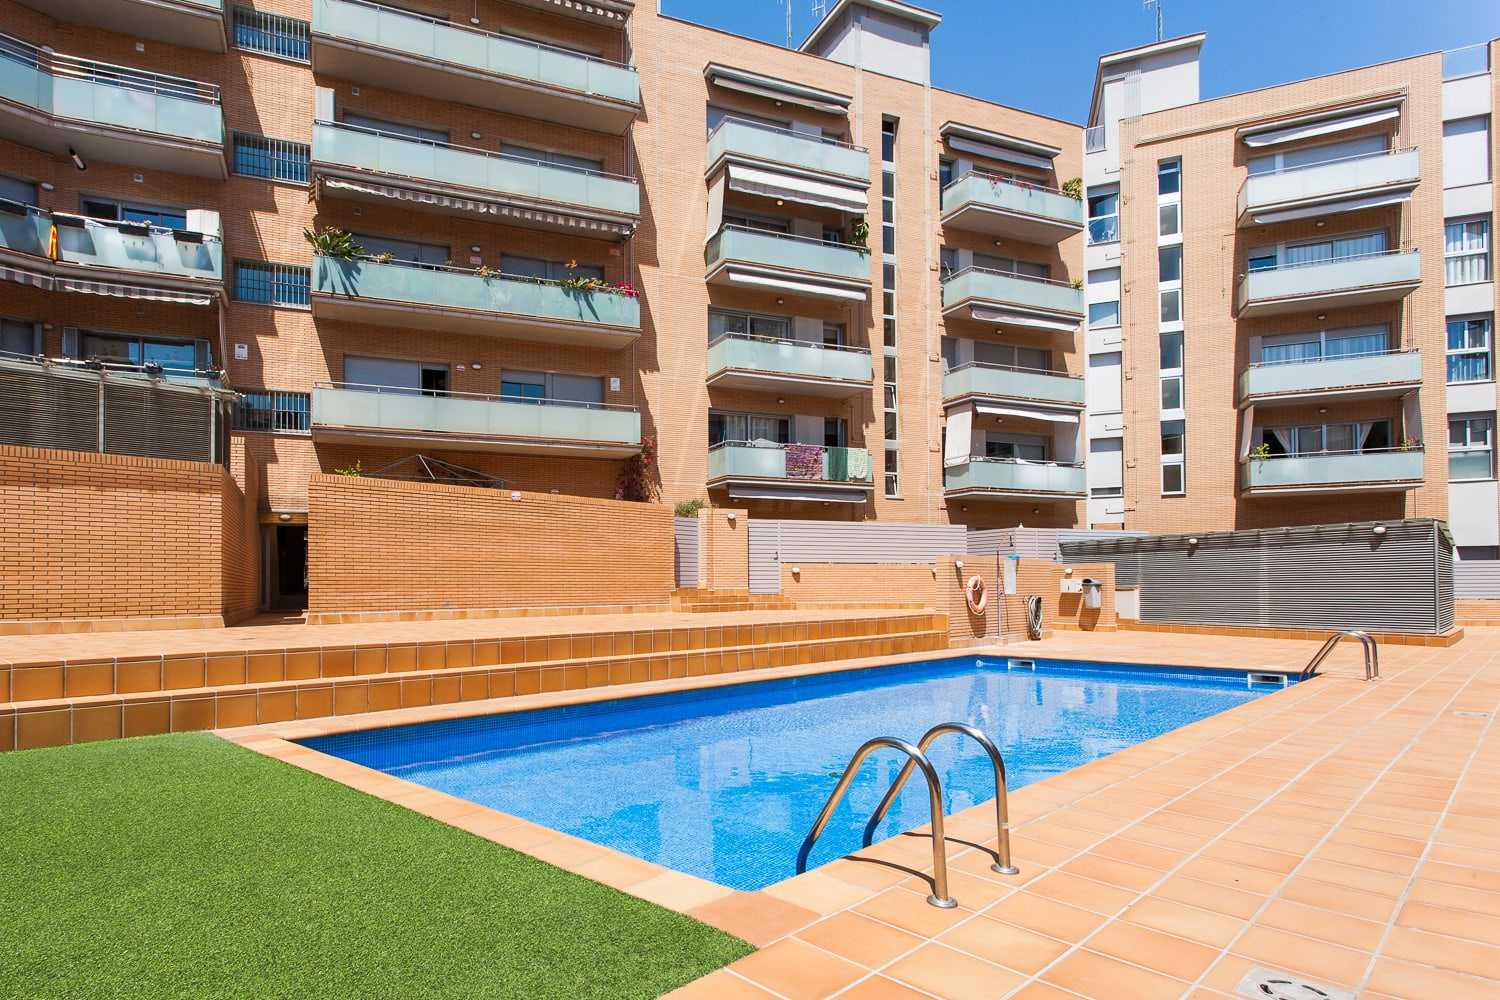 Fot grafo inmobiliaria real estate photographer barcelona for Portales inmobiliarios barcelona